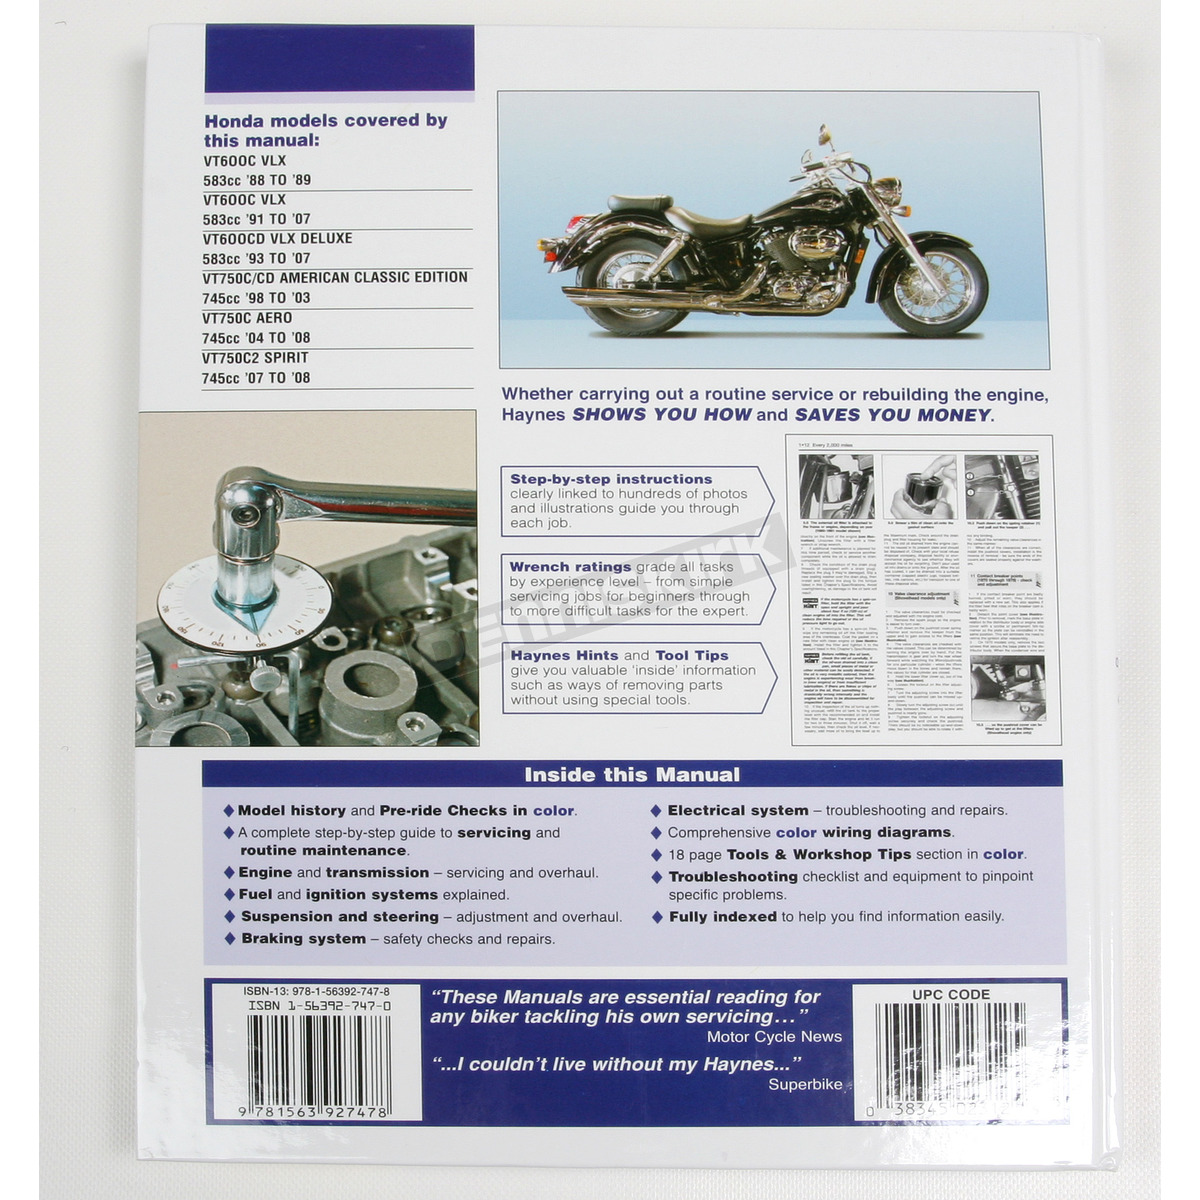 ... Honda Shadow Repair Manual - 2312